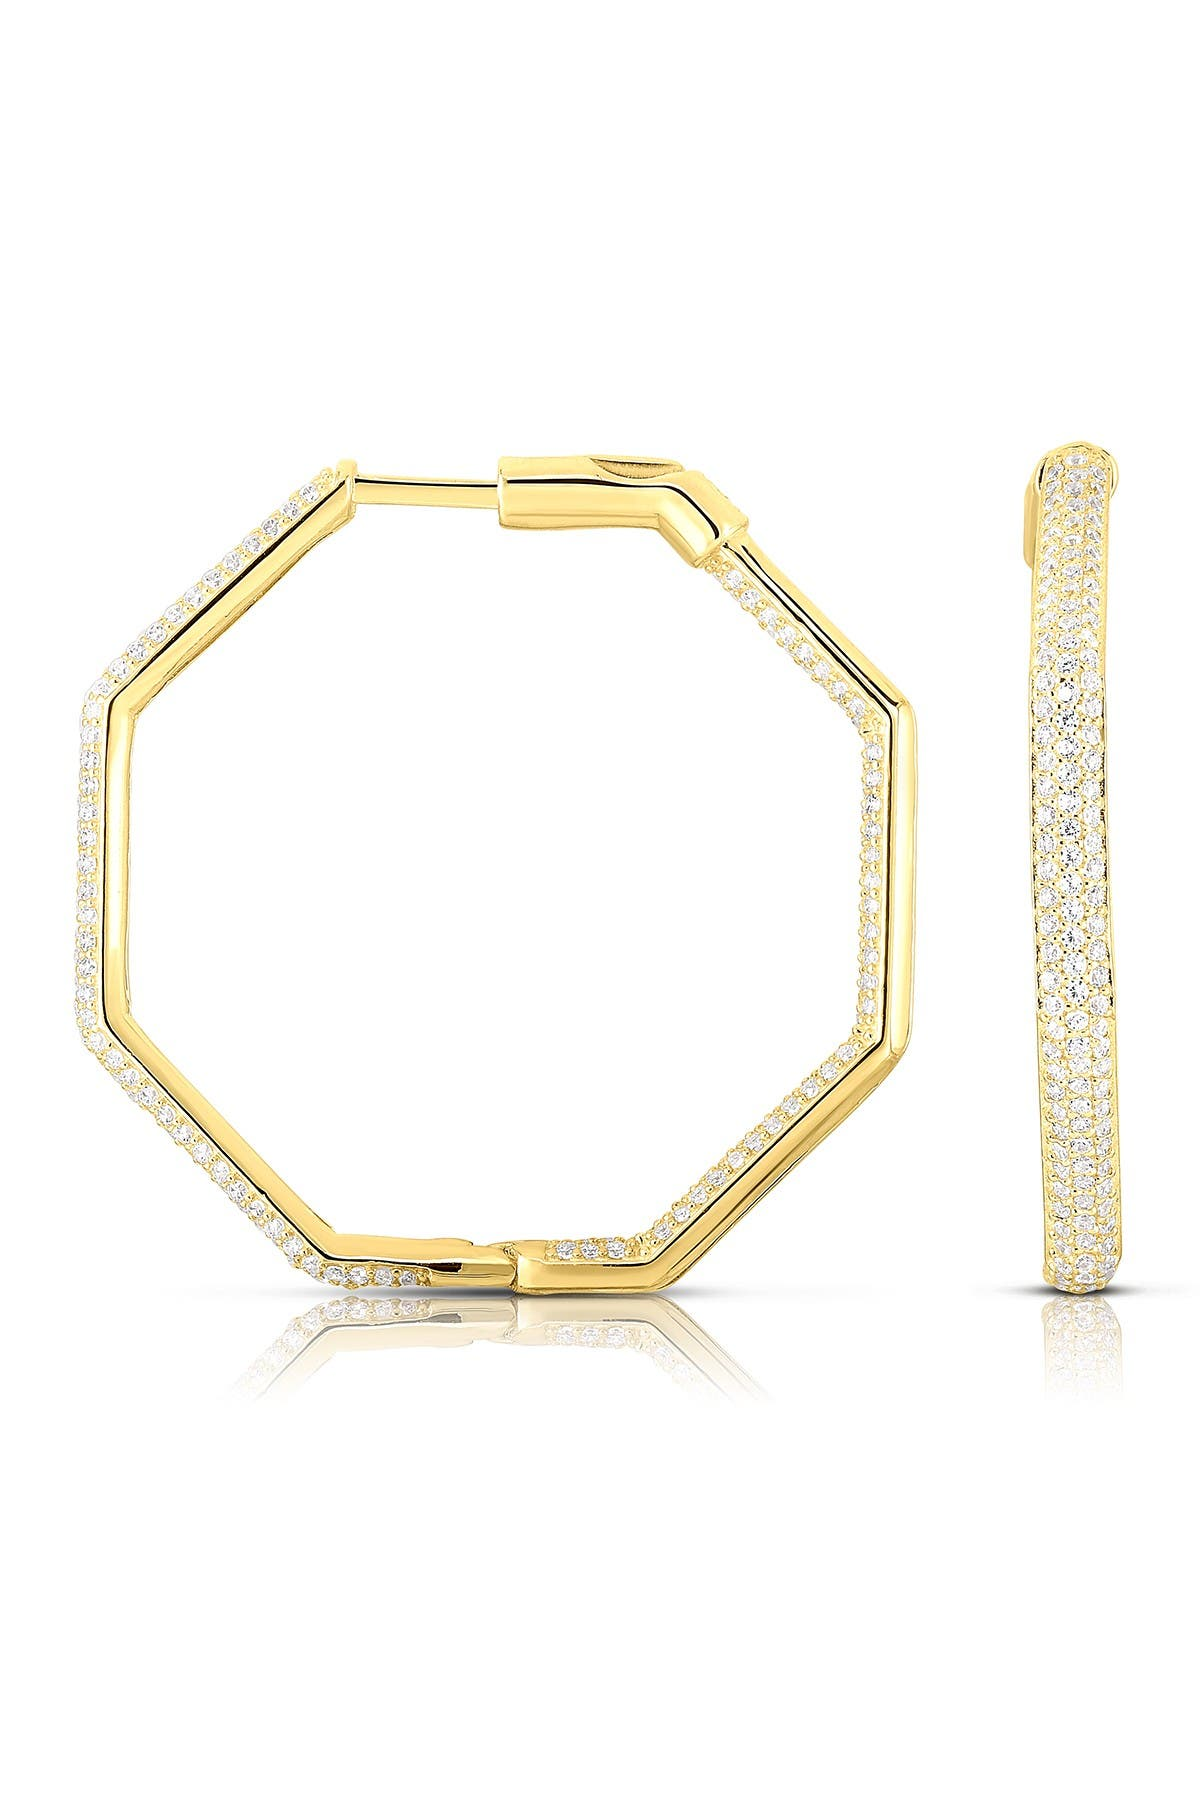 Image of Sphera Milano 14K Yellow Gold Plated Sterling Silver Large Octagon Inside Out CZ Pave 50mm Hoops